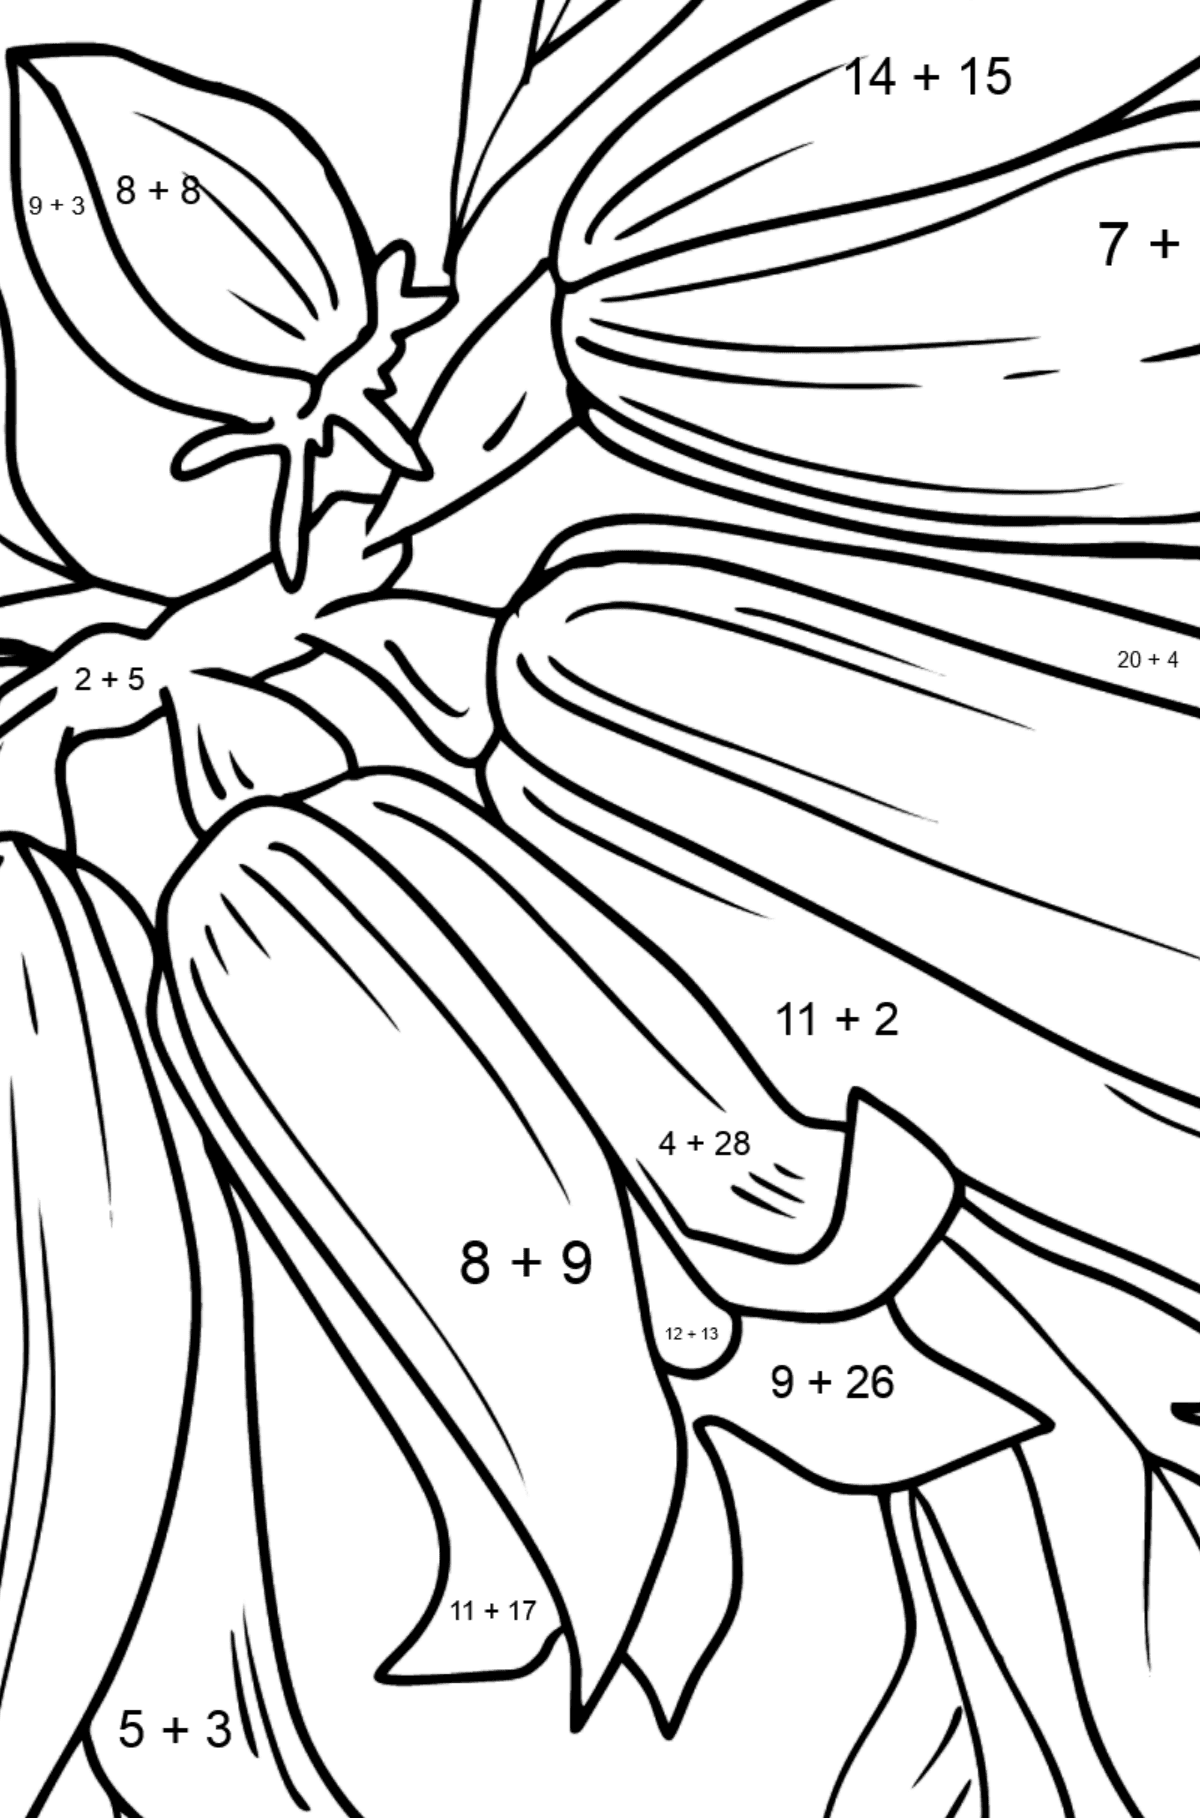 Flower Coloring Page - Bells - Math Coloring - Addition for Kids